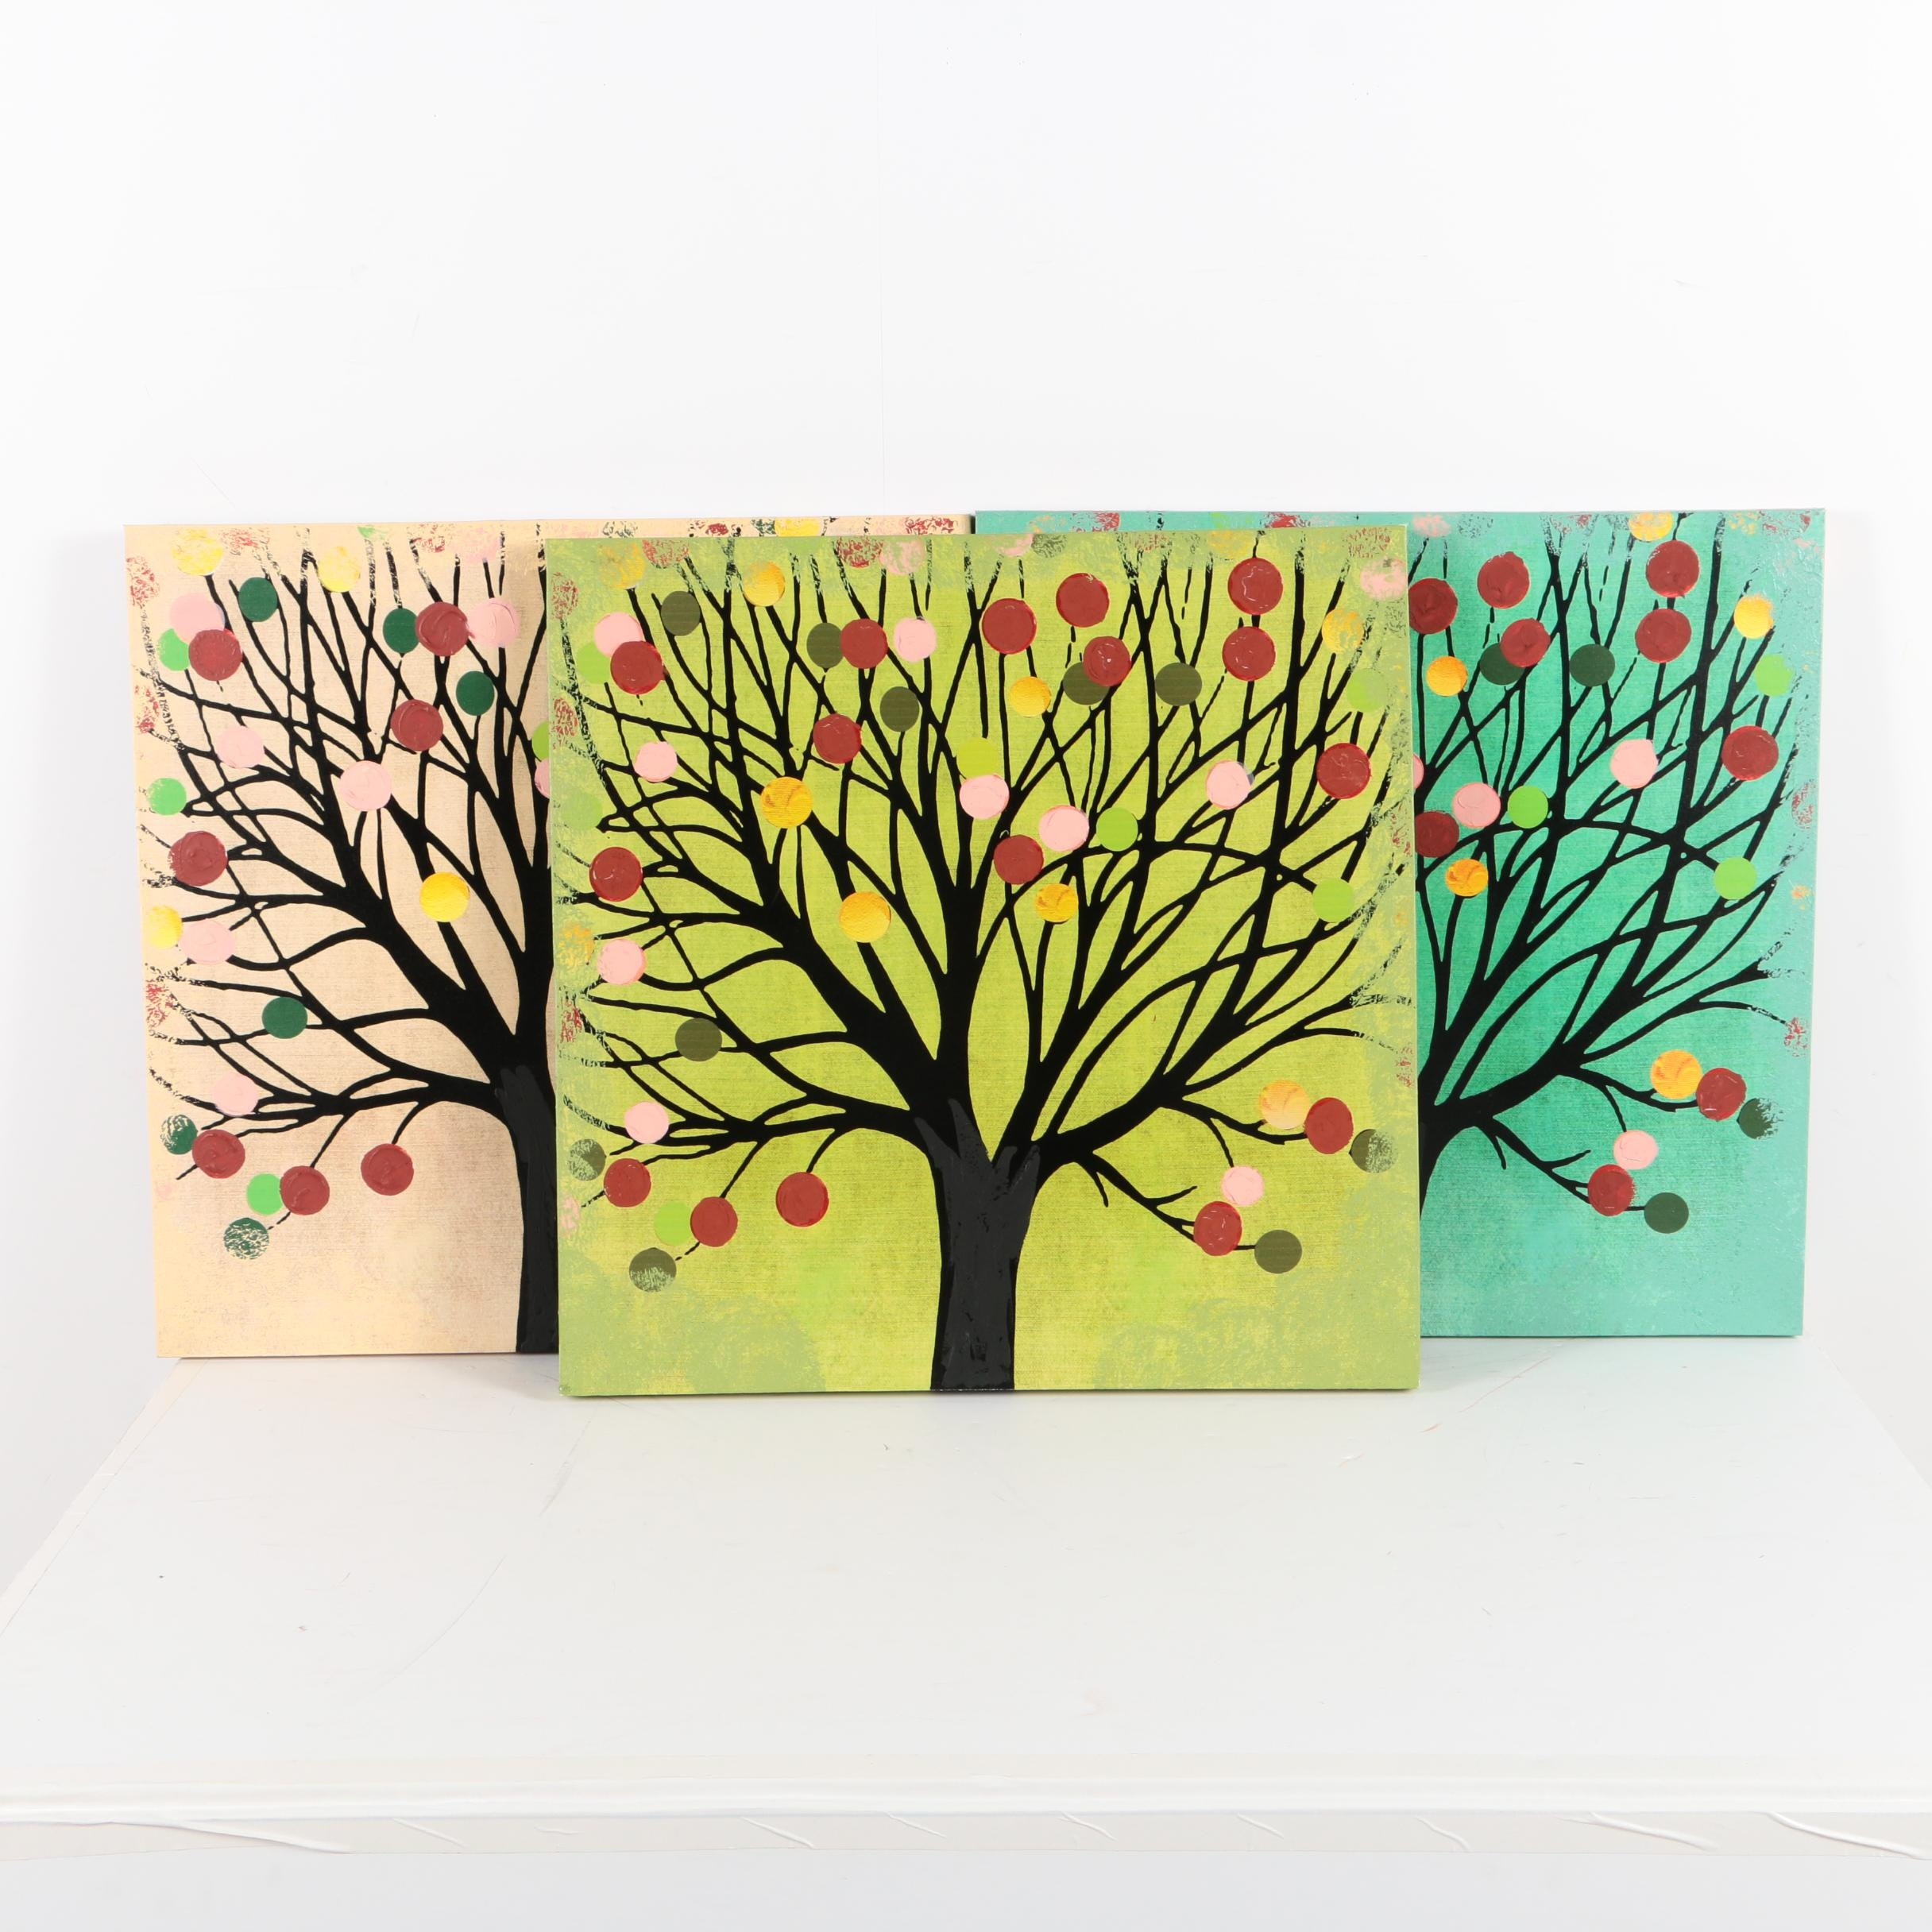 Embellished Giclee on Canvas of Trees